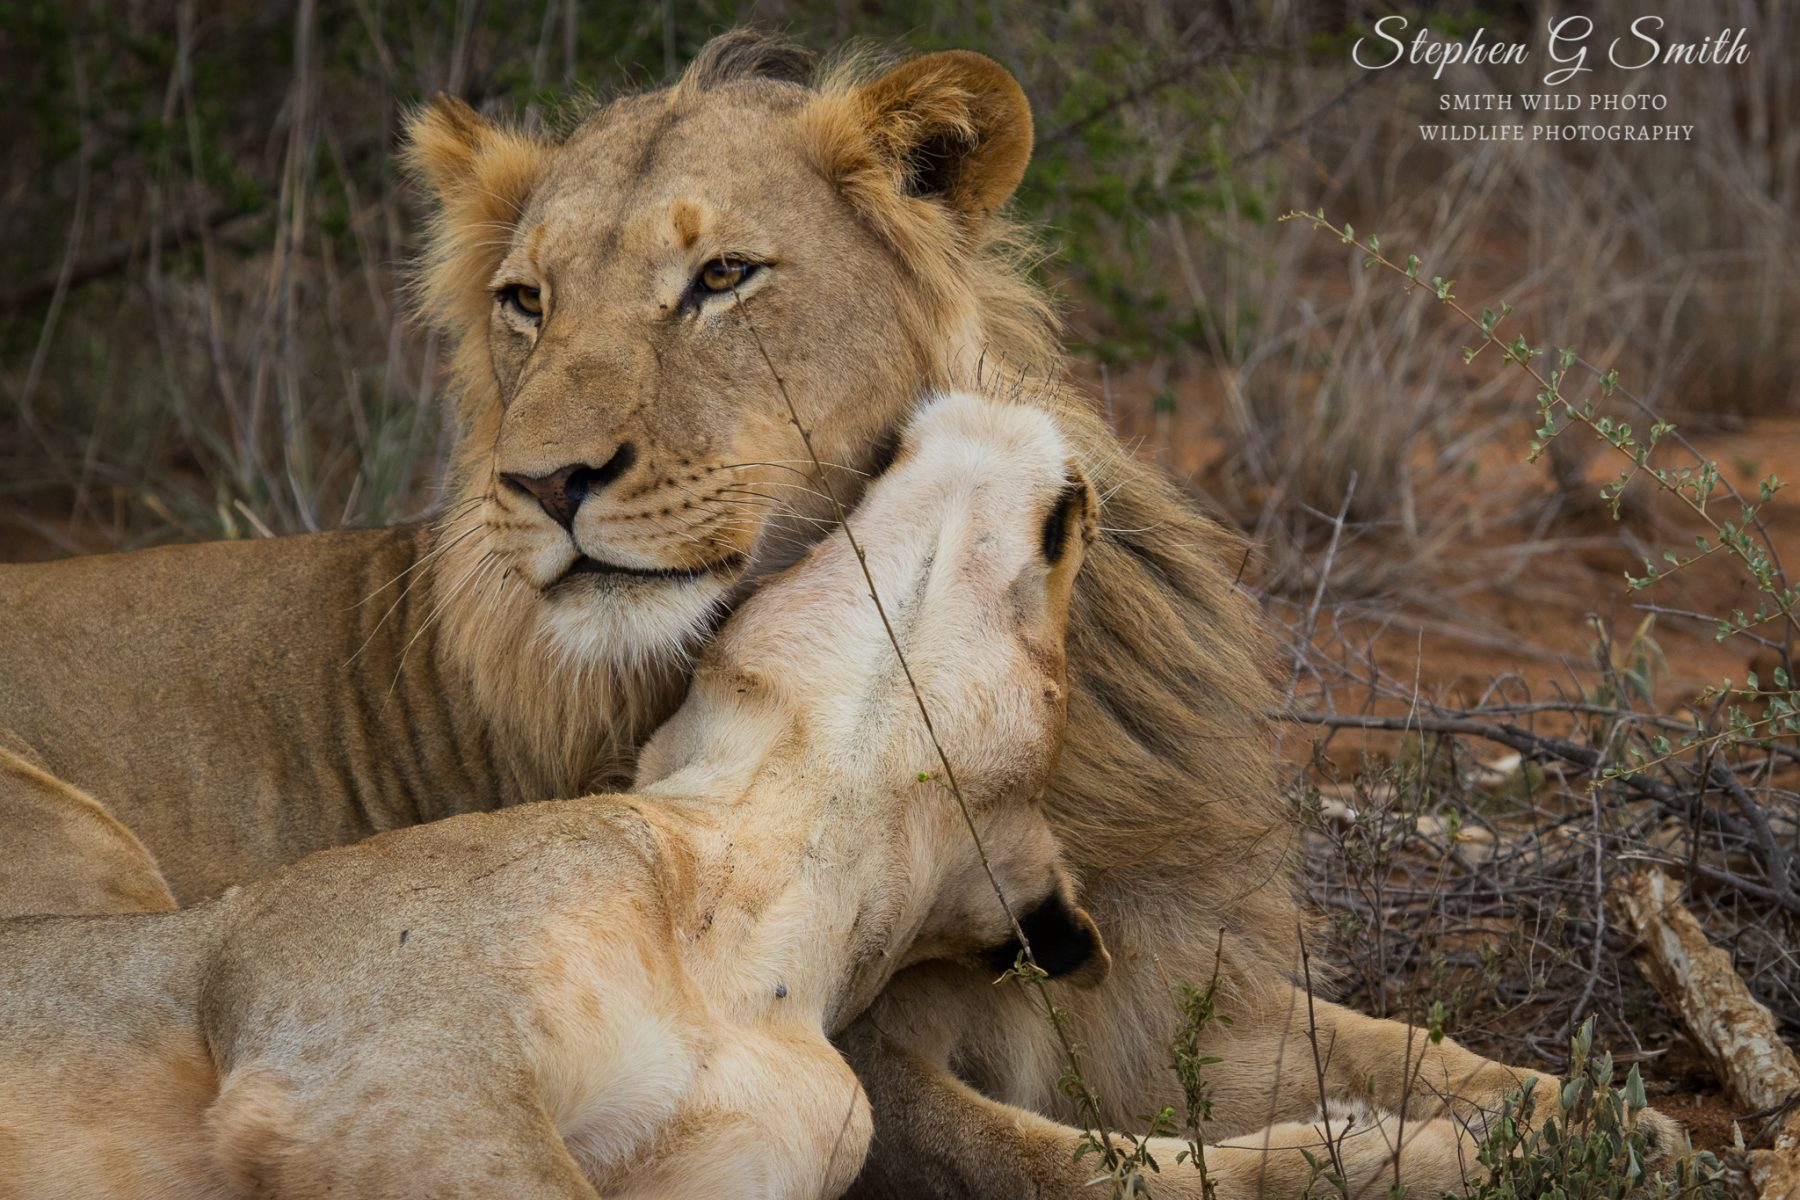 Lion and lioness being cute